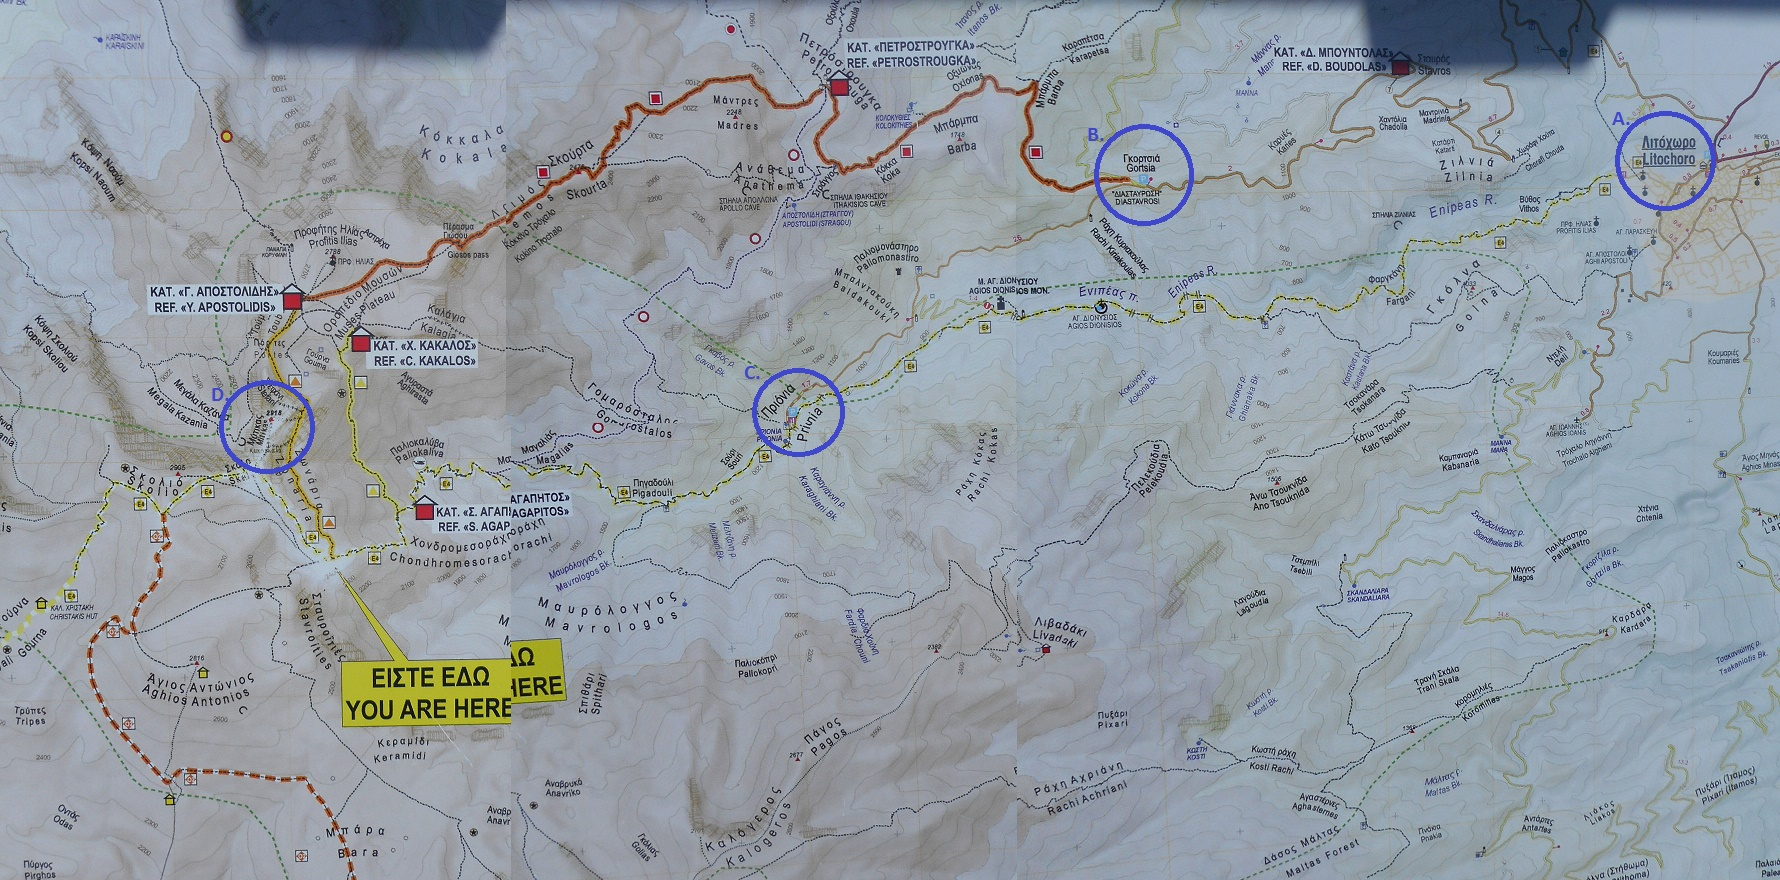 Trailhead map of Mount Olympus, Greece